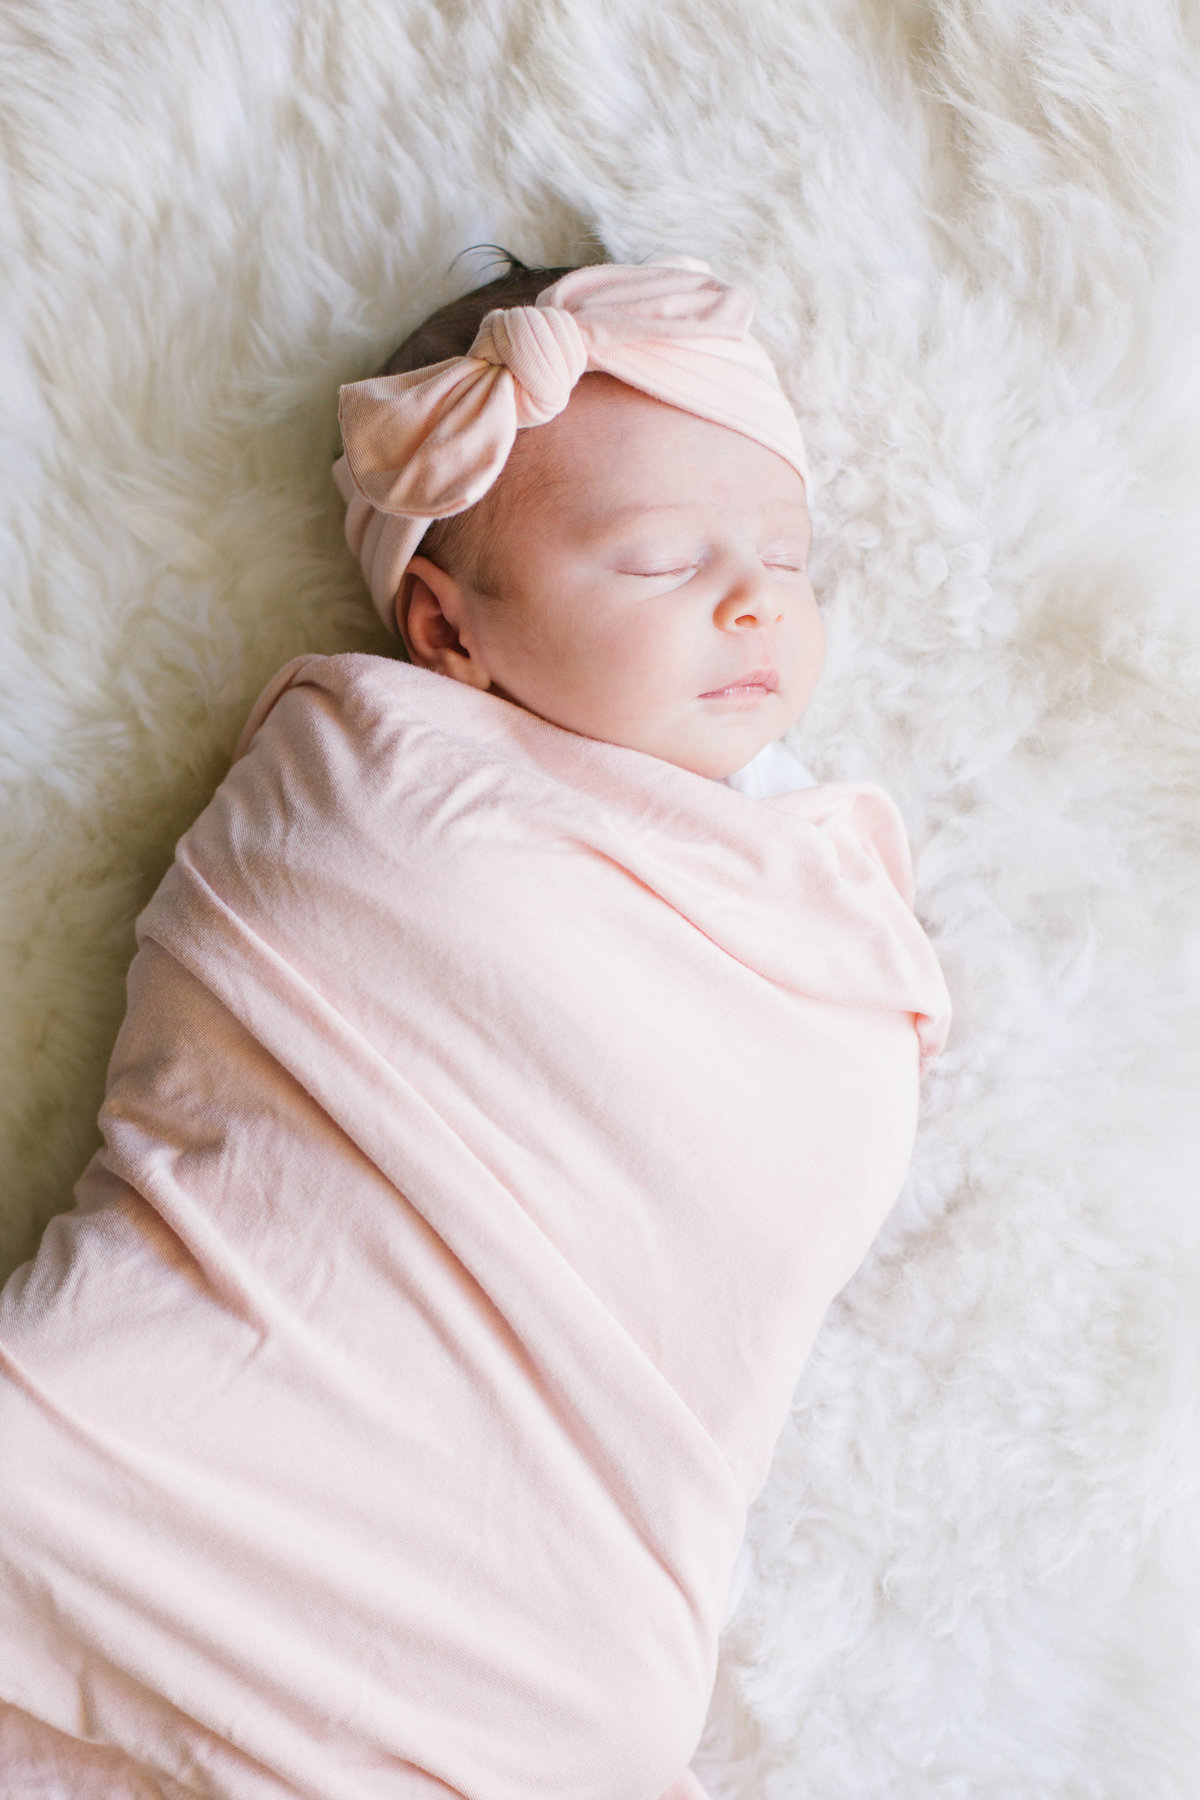 los-angeles-newborn-photography-12